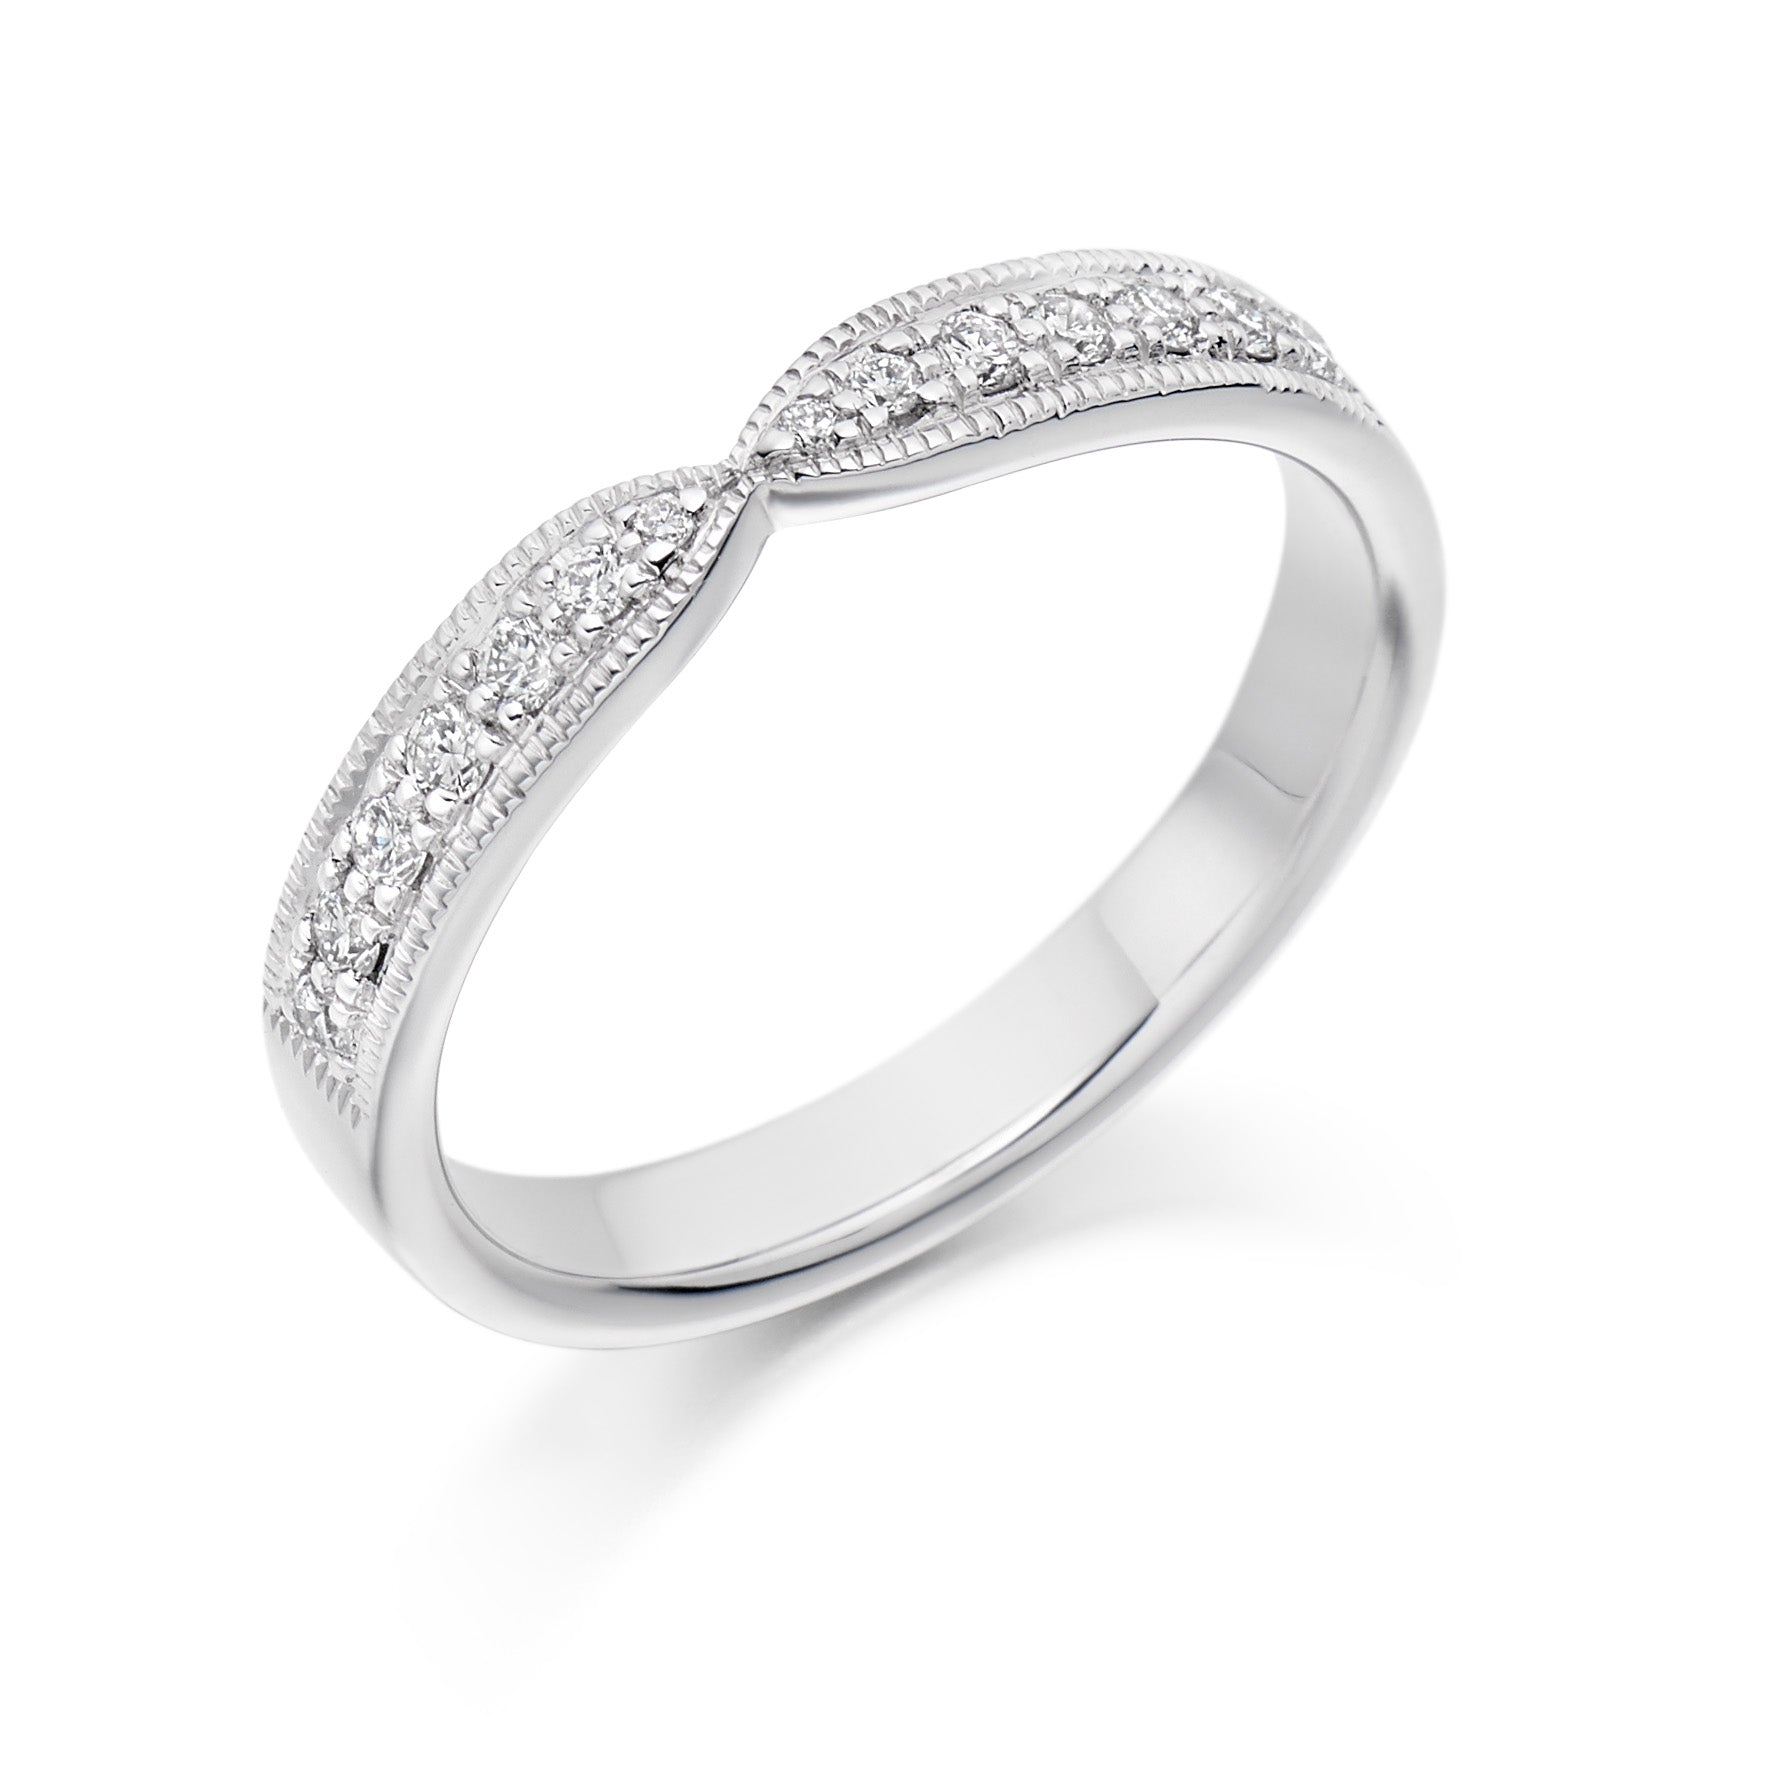 0.20ct Round Brilliant Cut Diamonds in a Grain Setting - Eternity Ring - (Home Try-On)